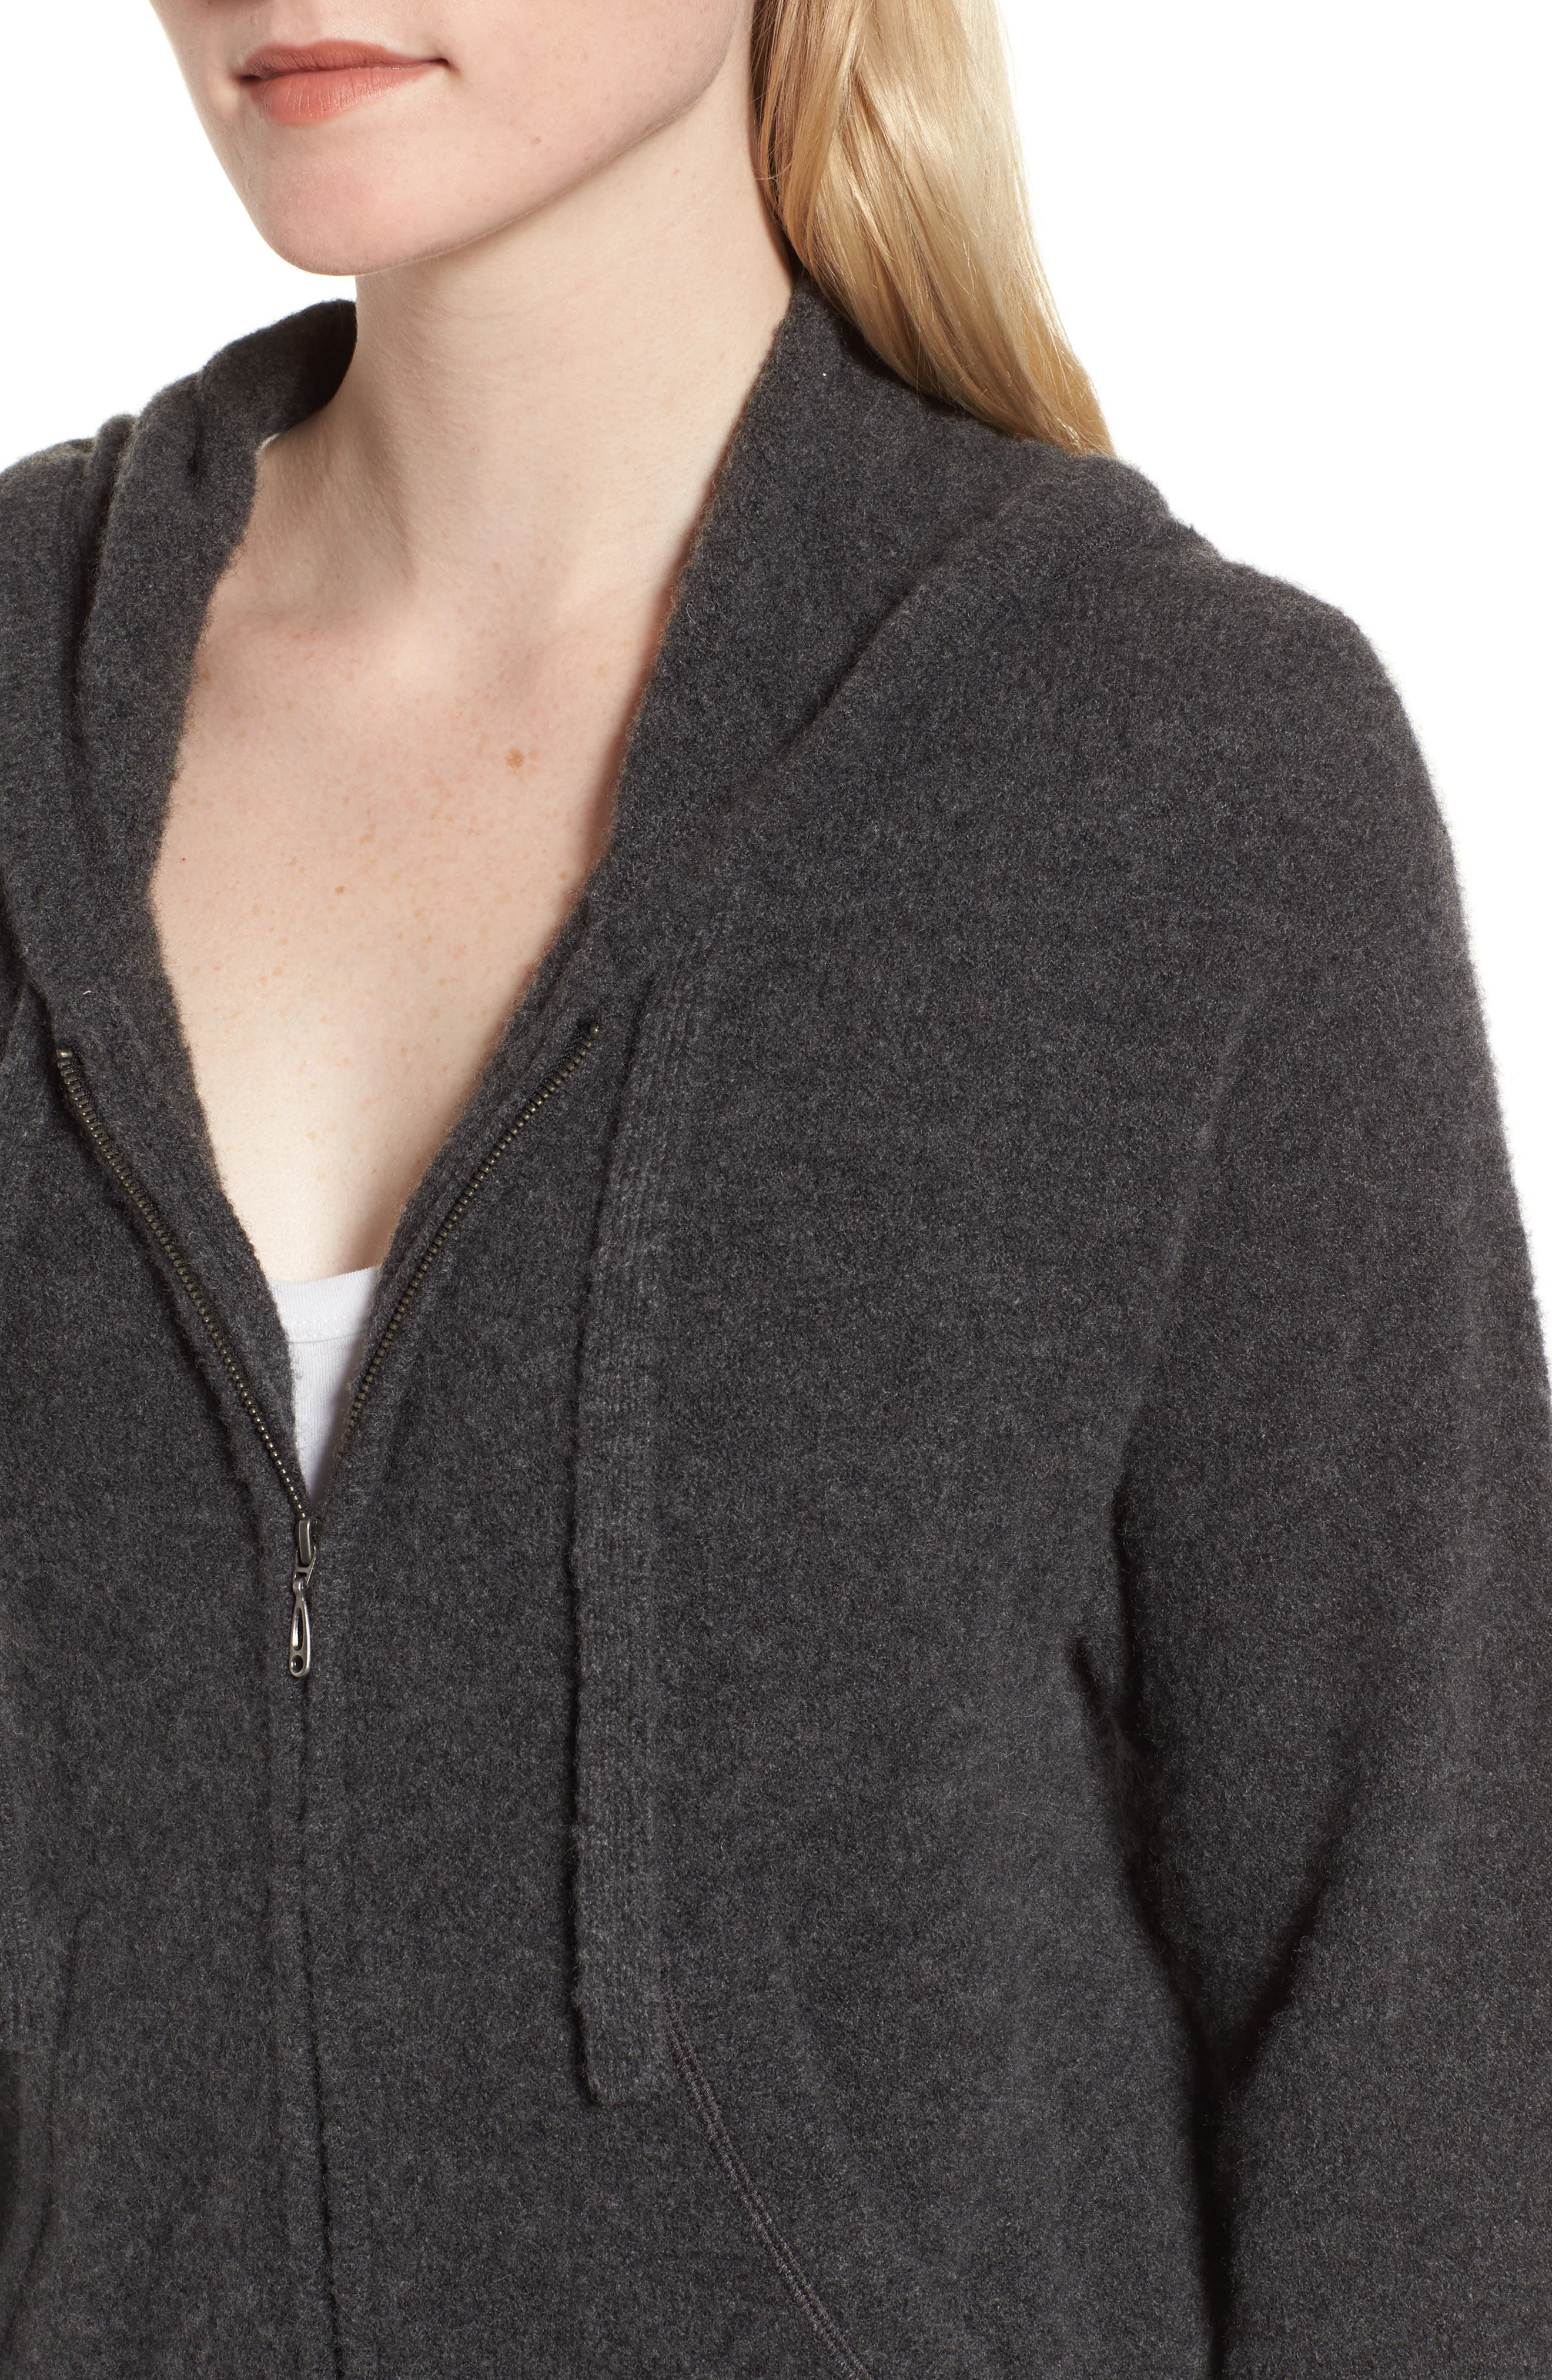 Brushed Cashmere Zip Hoodie,                             Alternate thumbnail 4, color,                             Charcoal